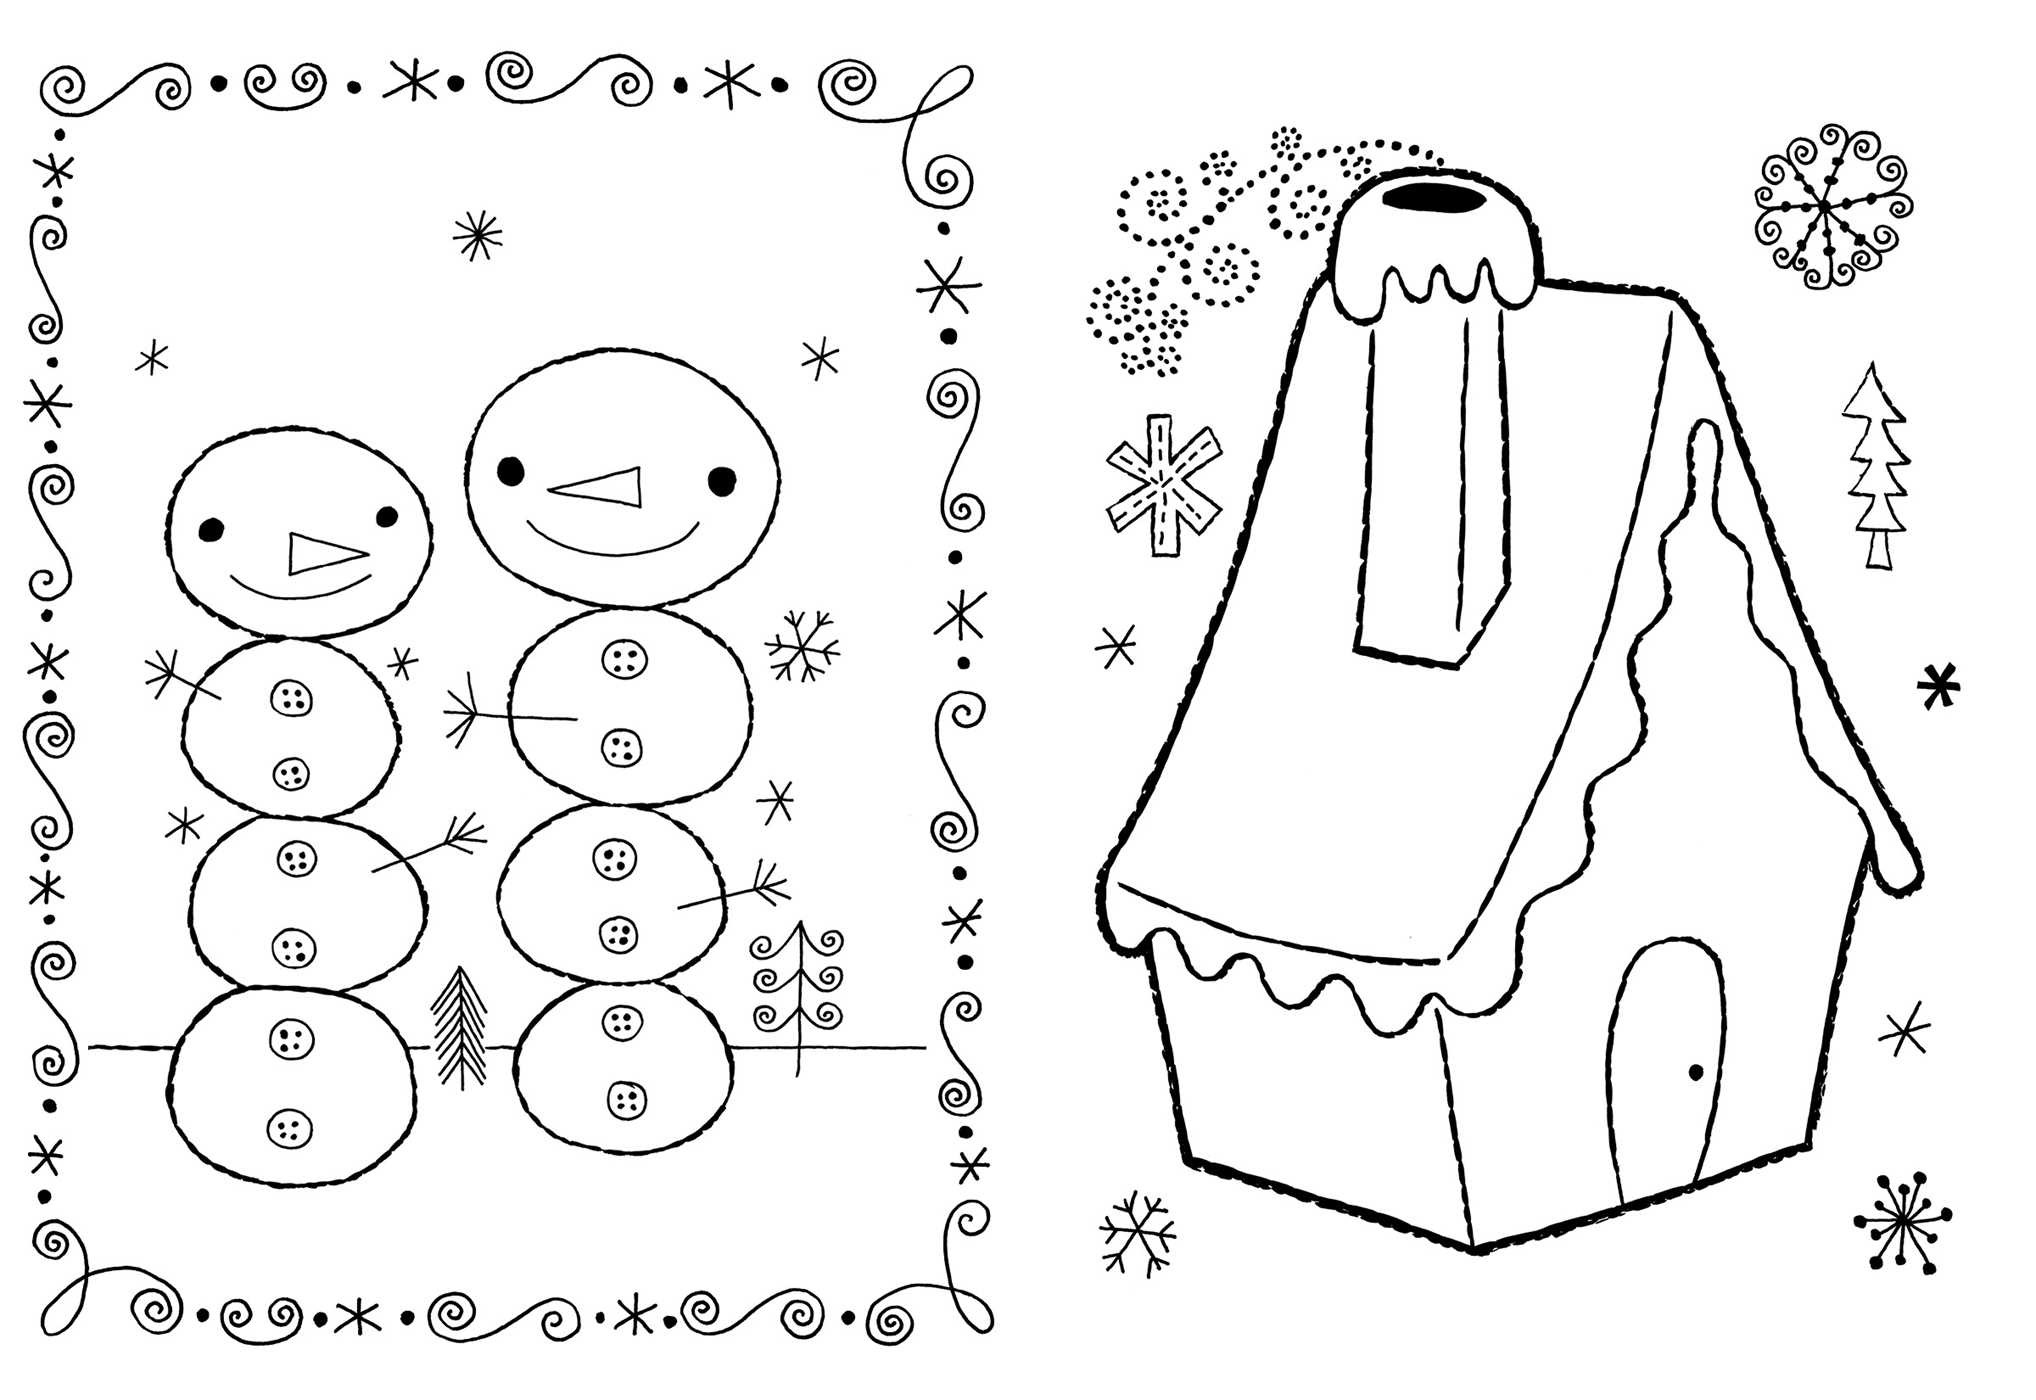 Dream doodle draw gift set 9781481471596.in01